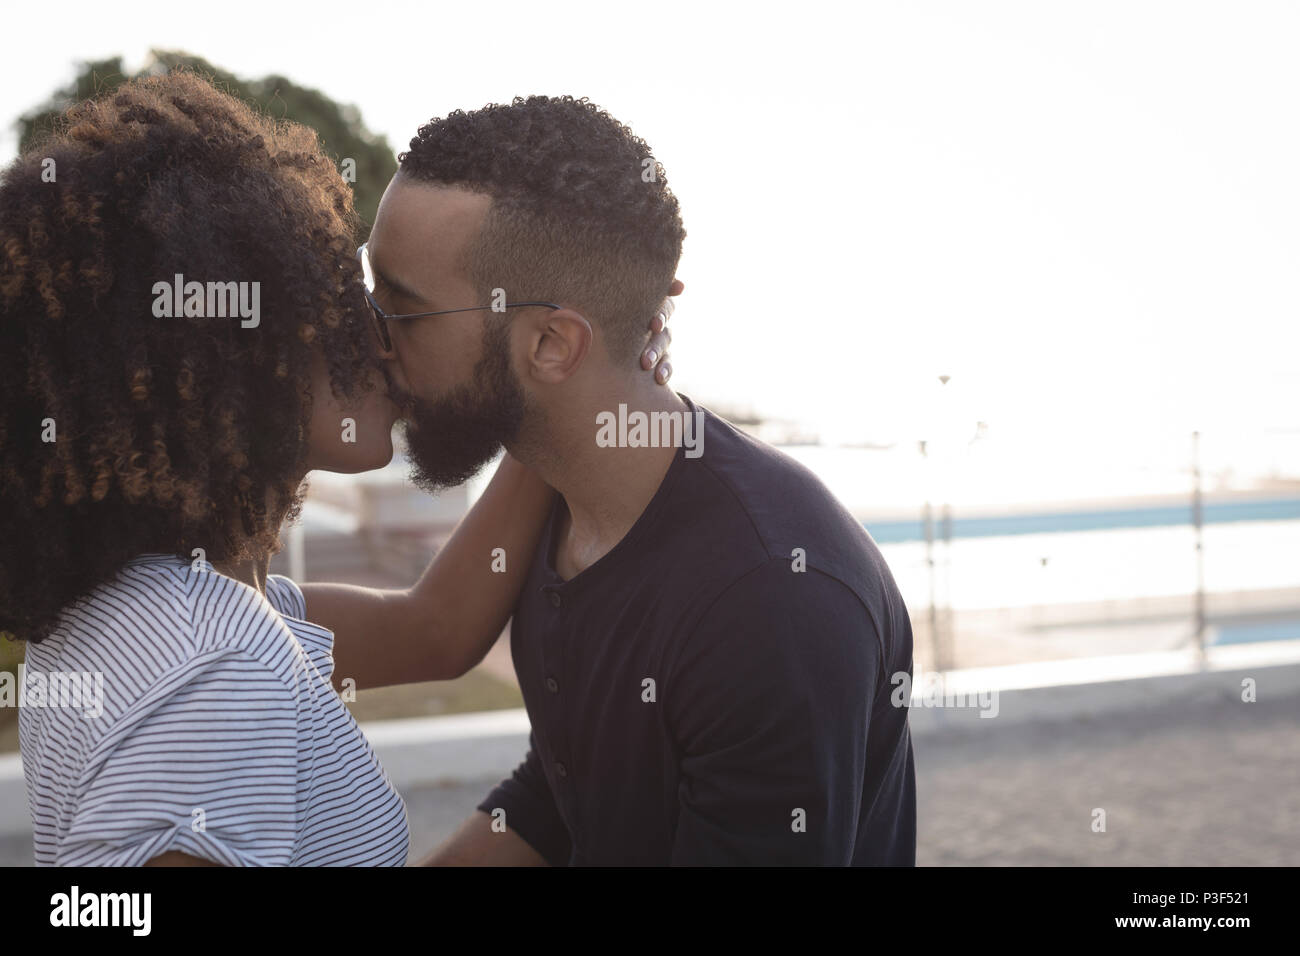 Couple kissing each other near beach - Stock Image